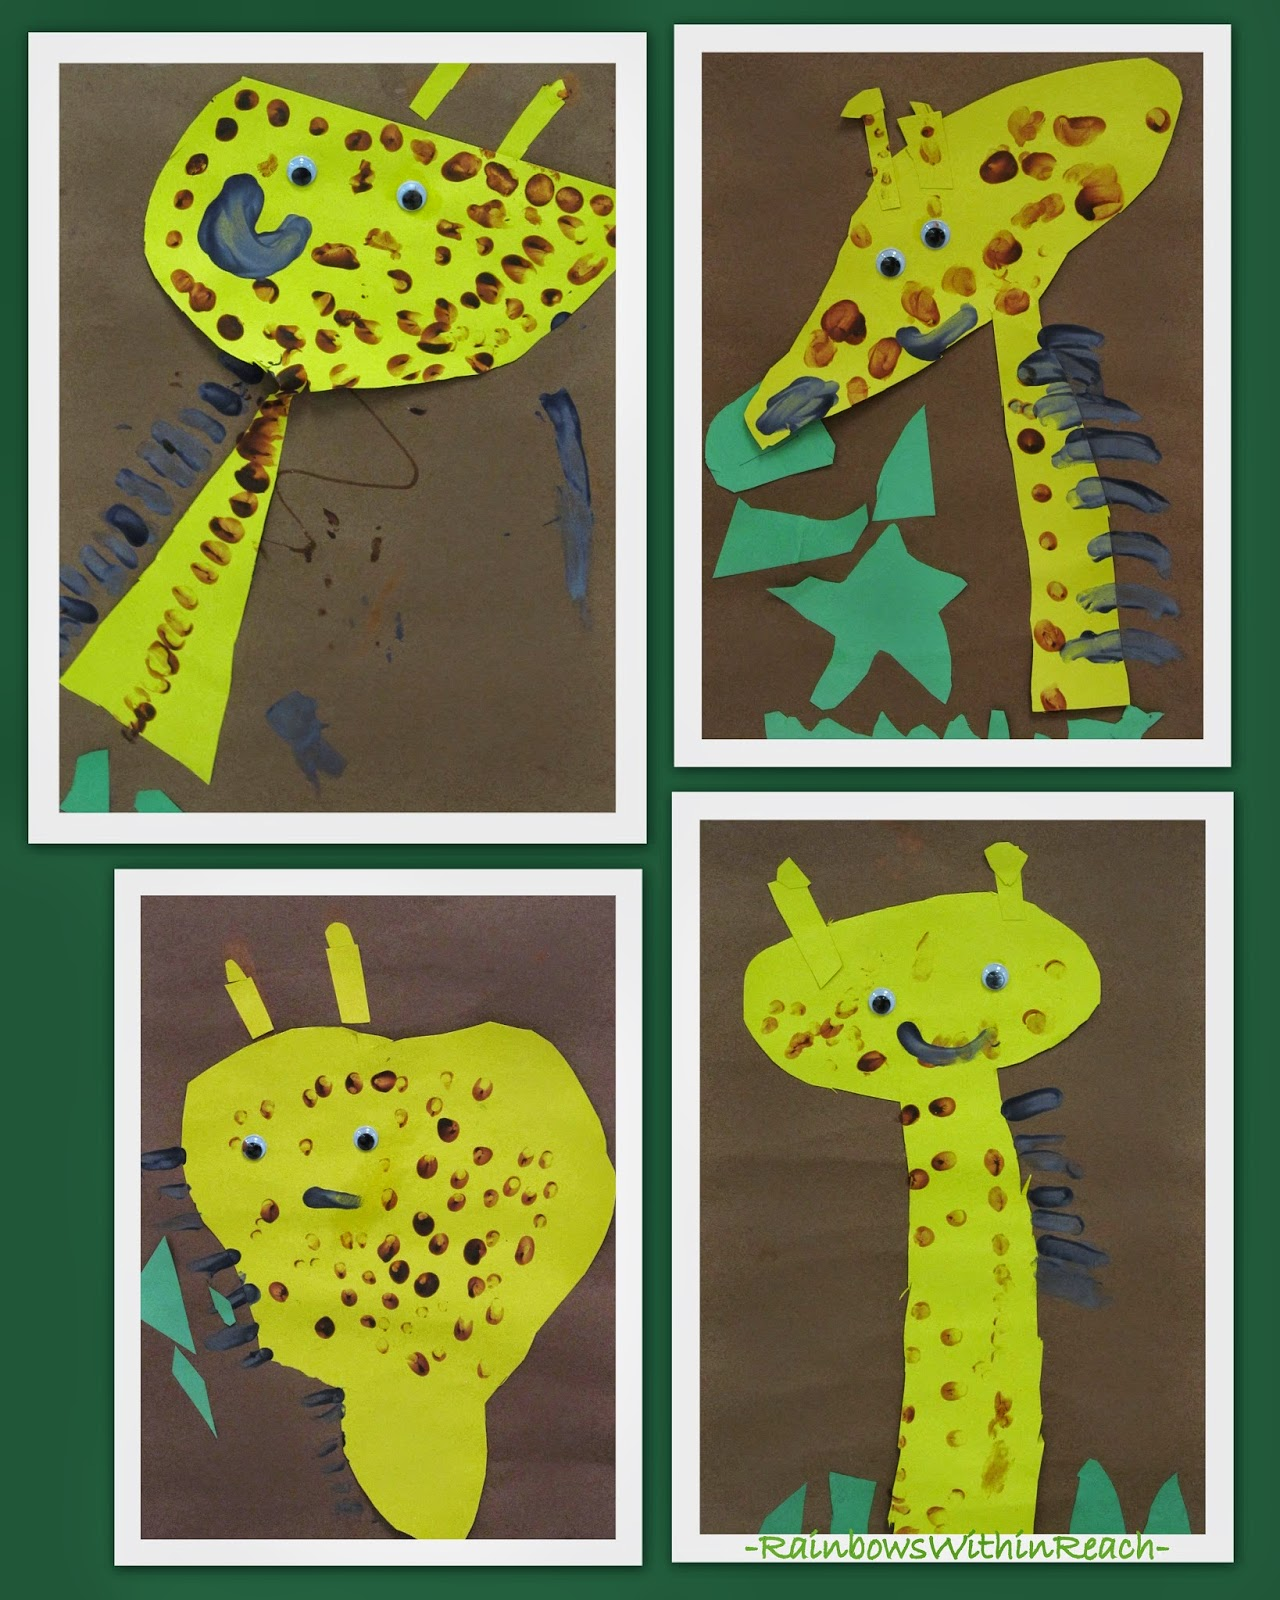 Continuum from 'Craftivity' to Authentic Art: Child Created Giraffe Paintings at RainbowsWithinReach